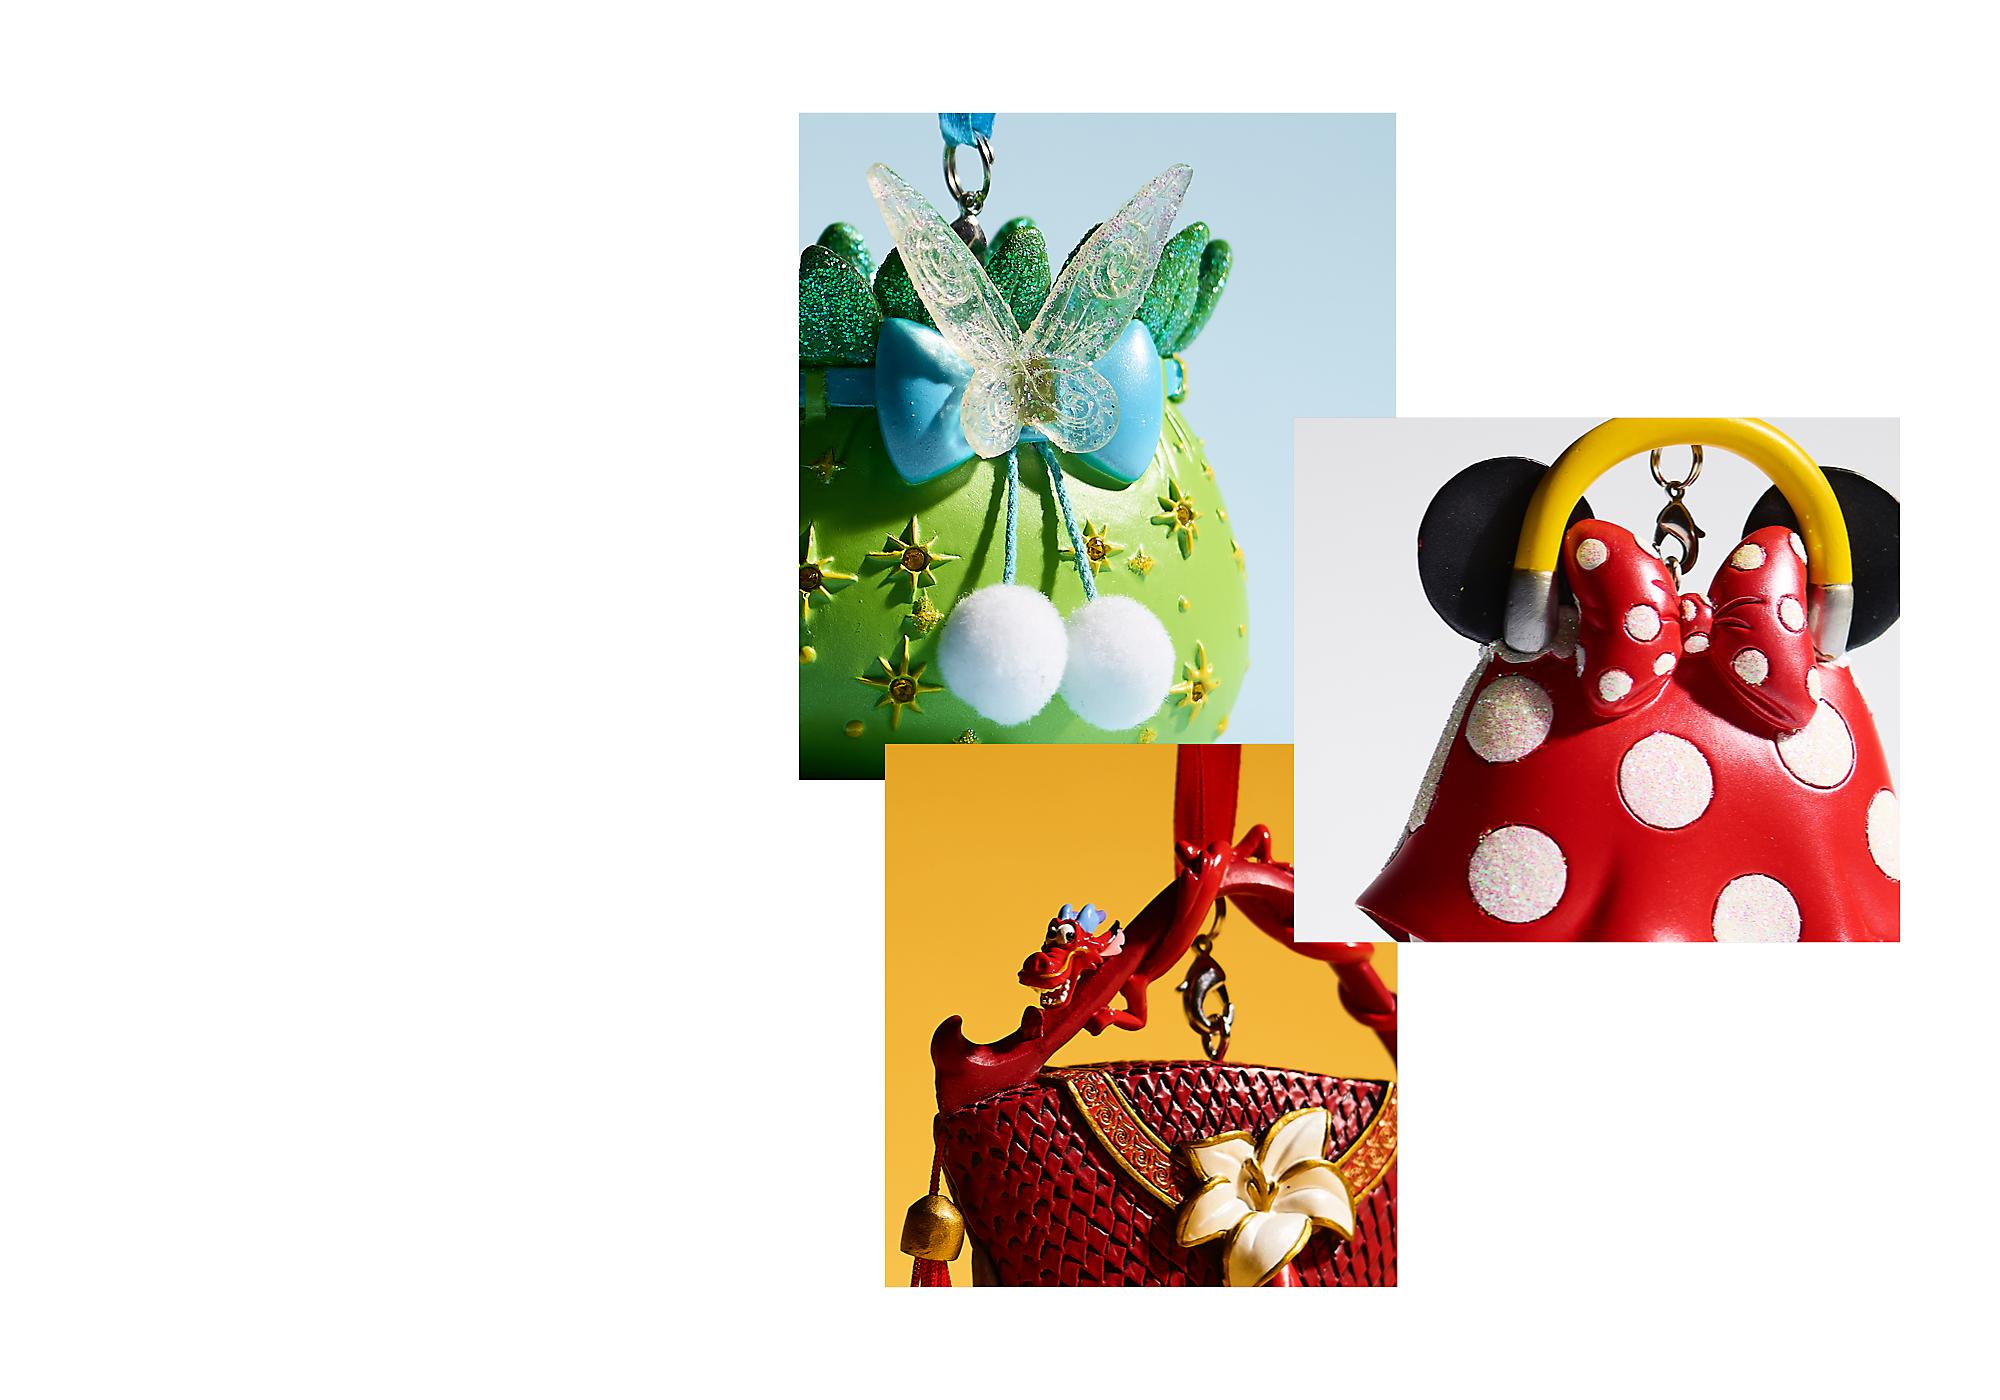 Disney Classics Collection Taking inspiration from some of our most beloved films, we have a perfectly classic collection of handbag ornaments for your home.